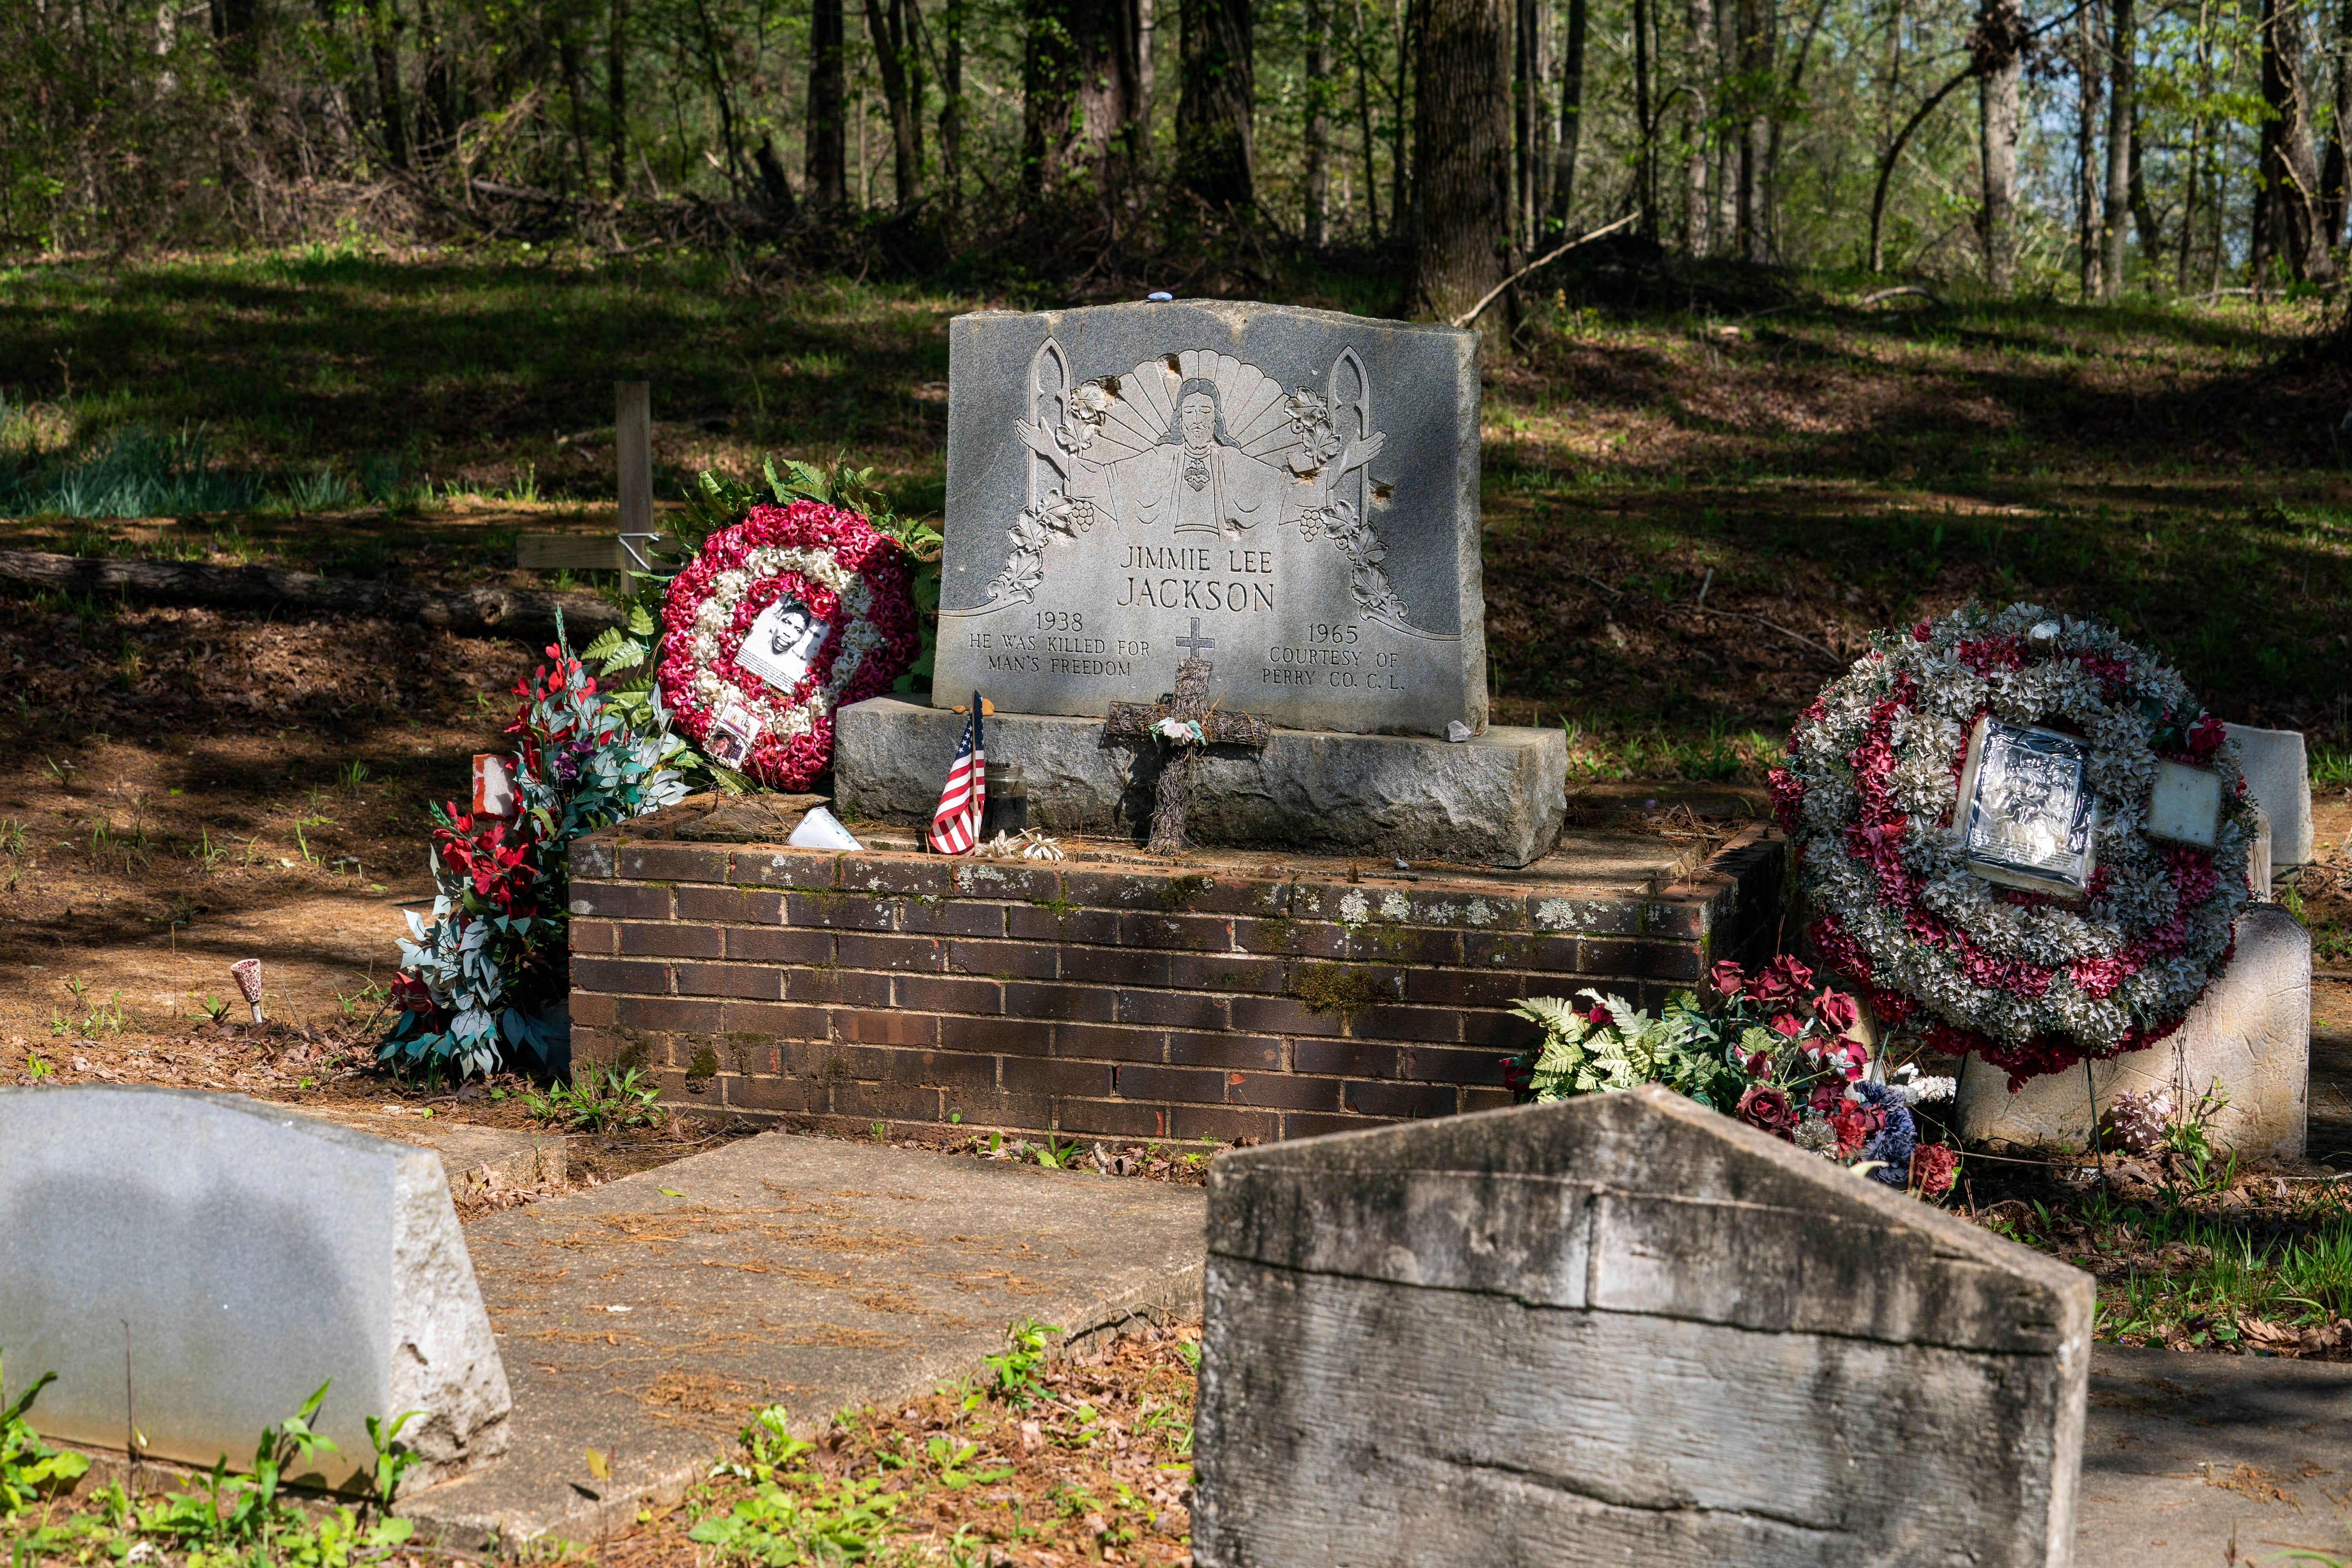 The gravesite of Jimmie Lee Jackson in Marion, Alabama is adorned with tributes to his fateful death.